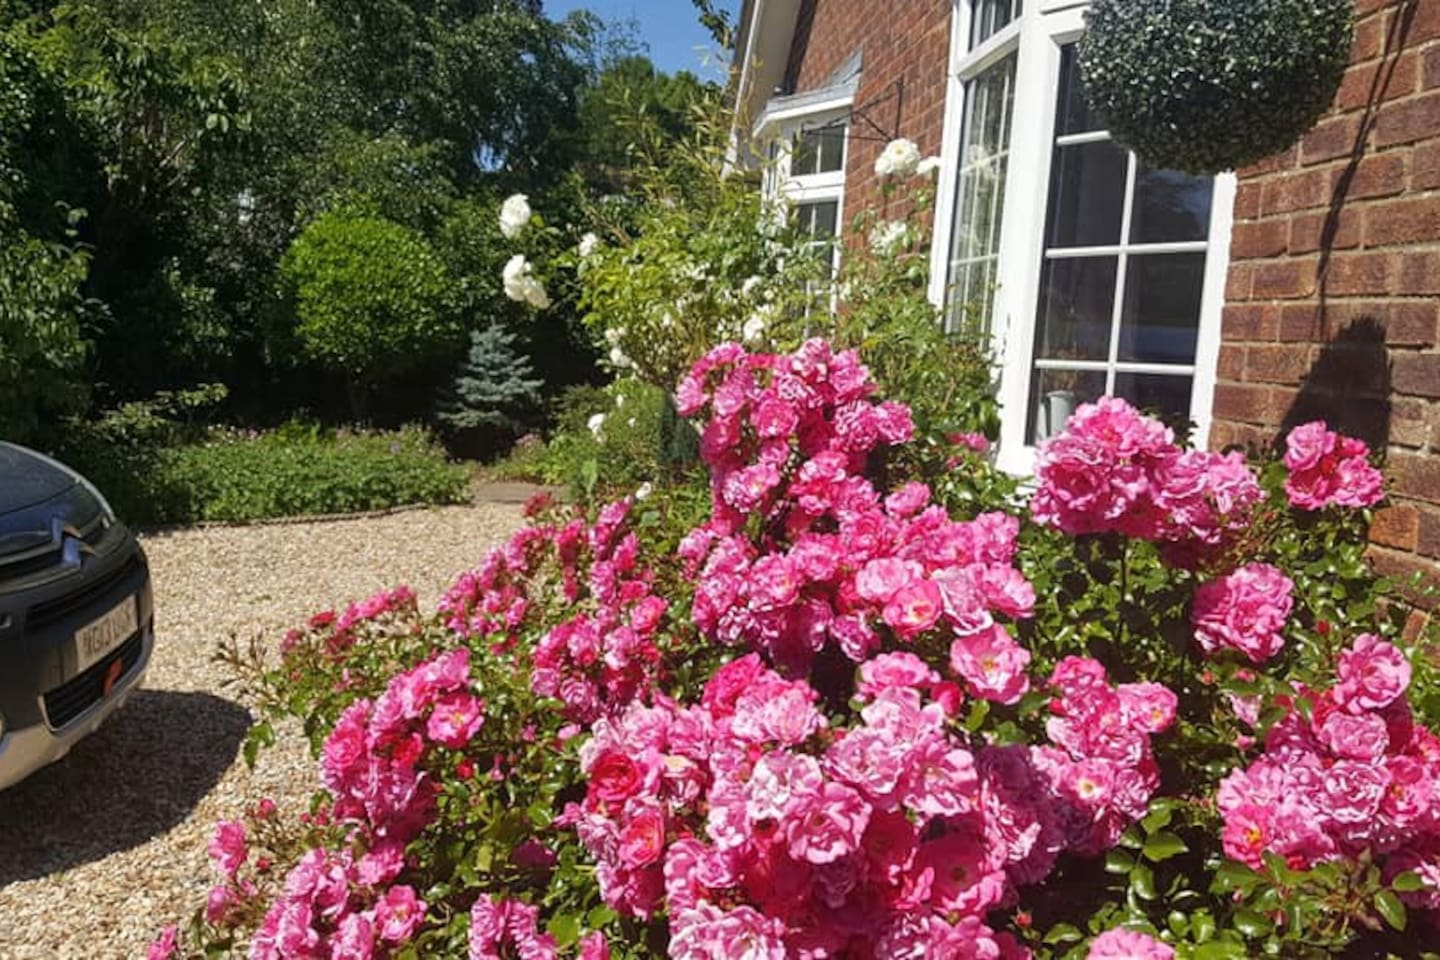 Roses in front garden, next to hard standing for parking.